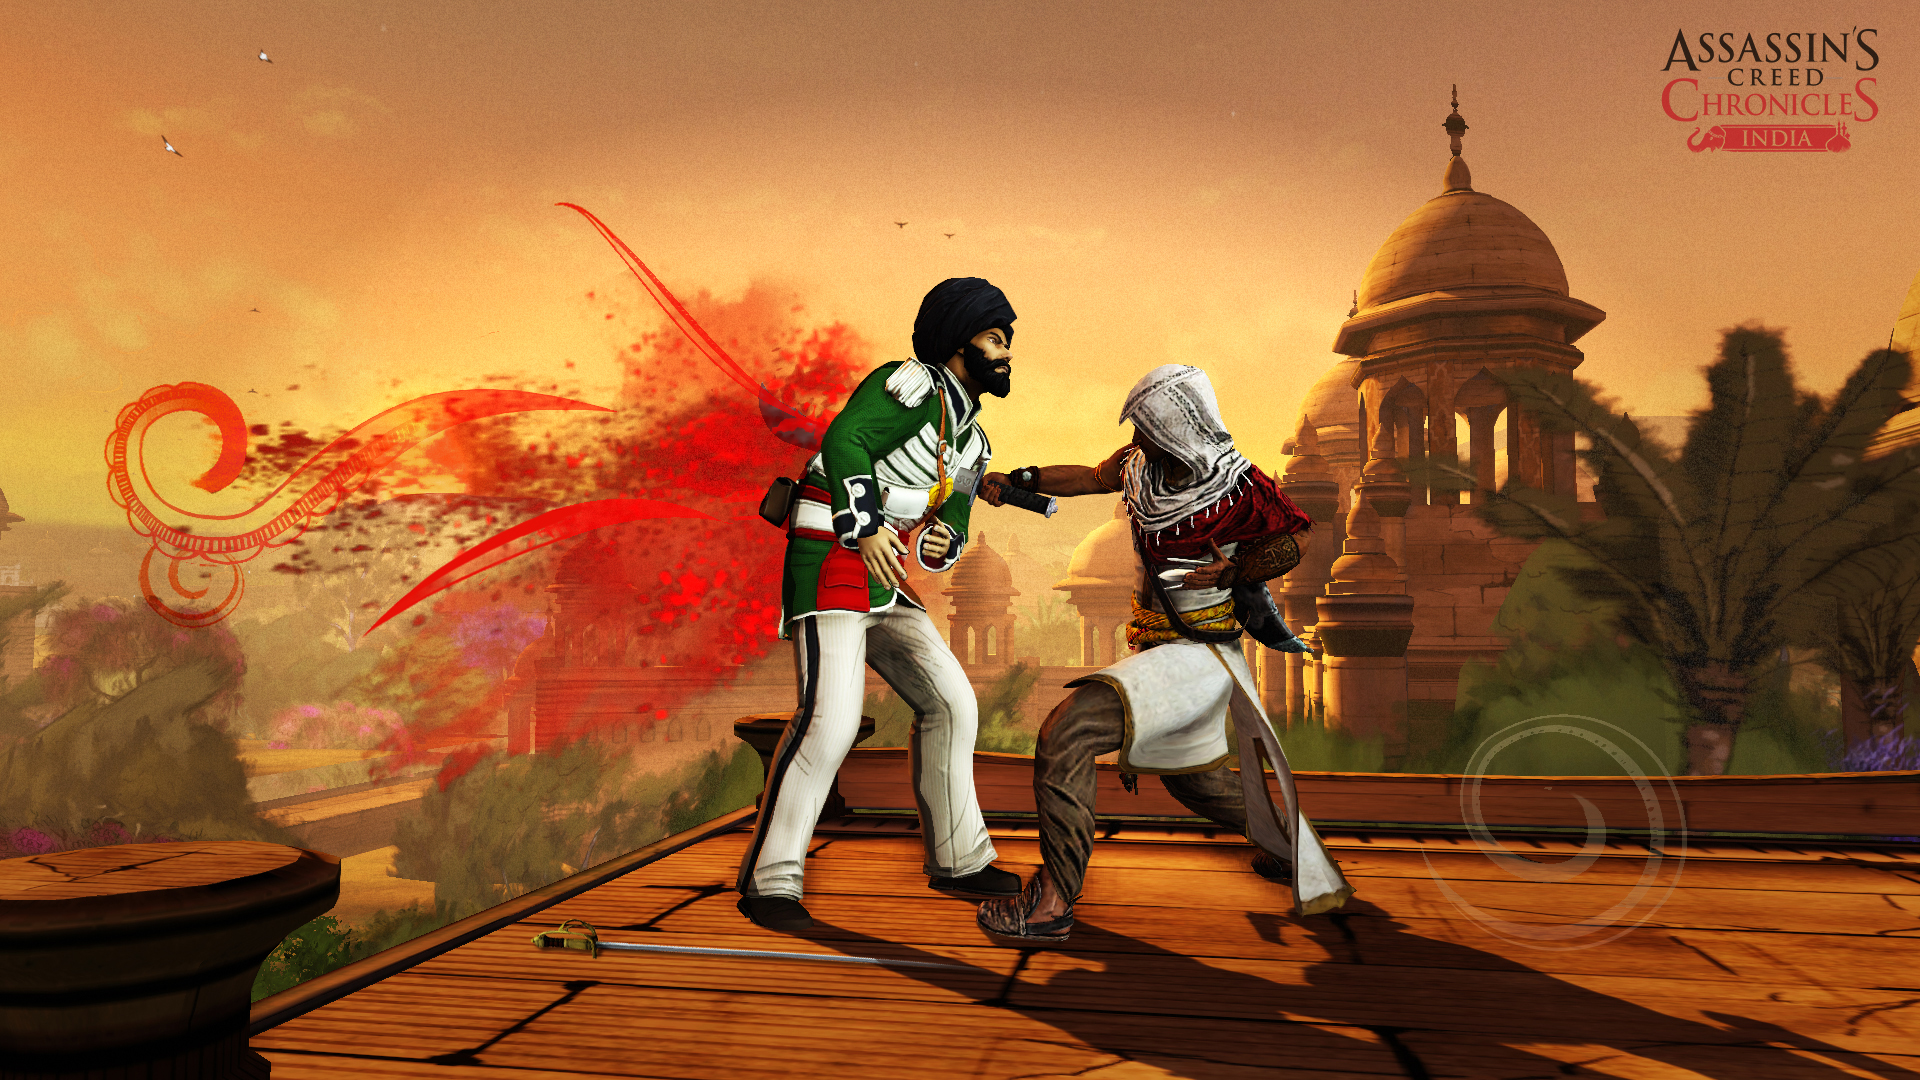 assassins-creed-chronicles-india-review-01